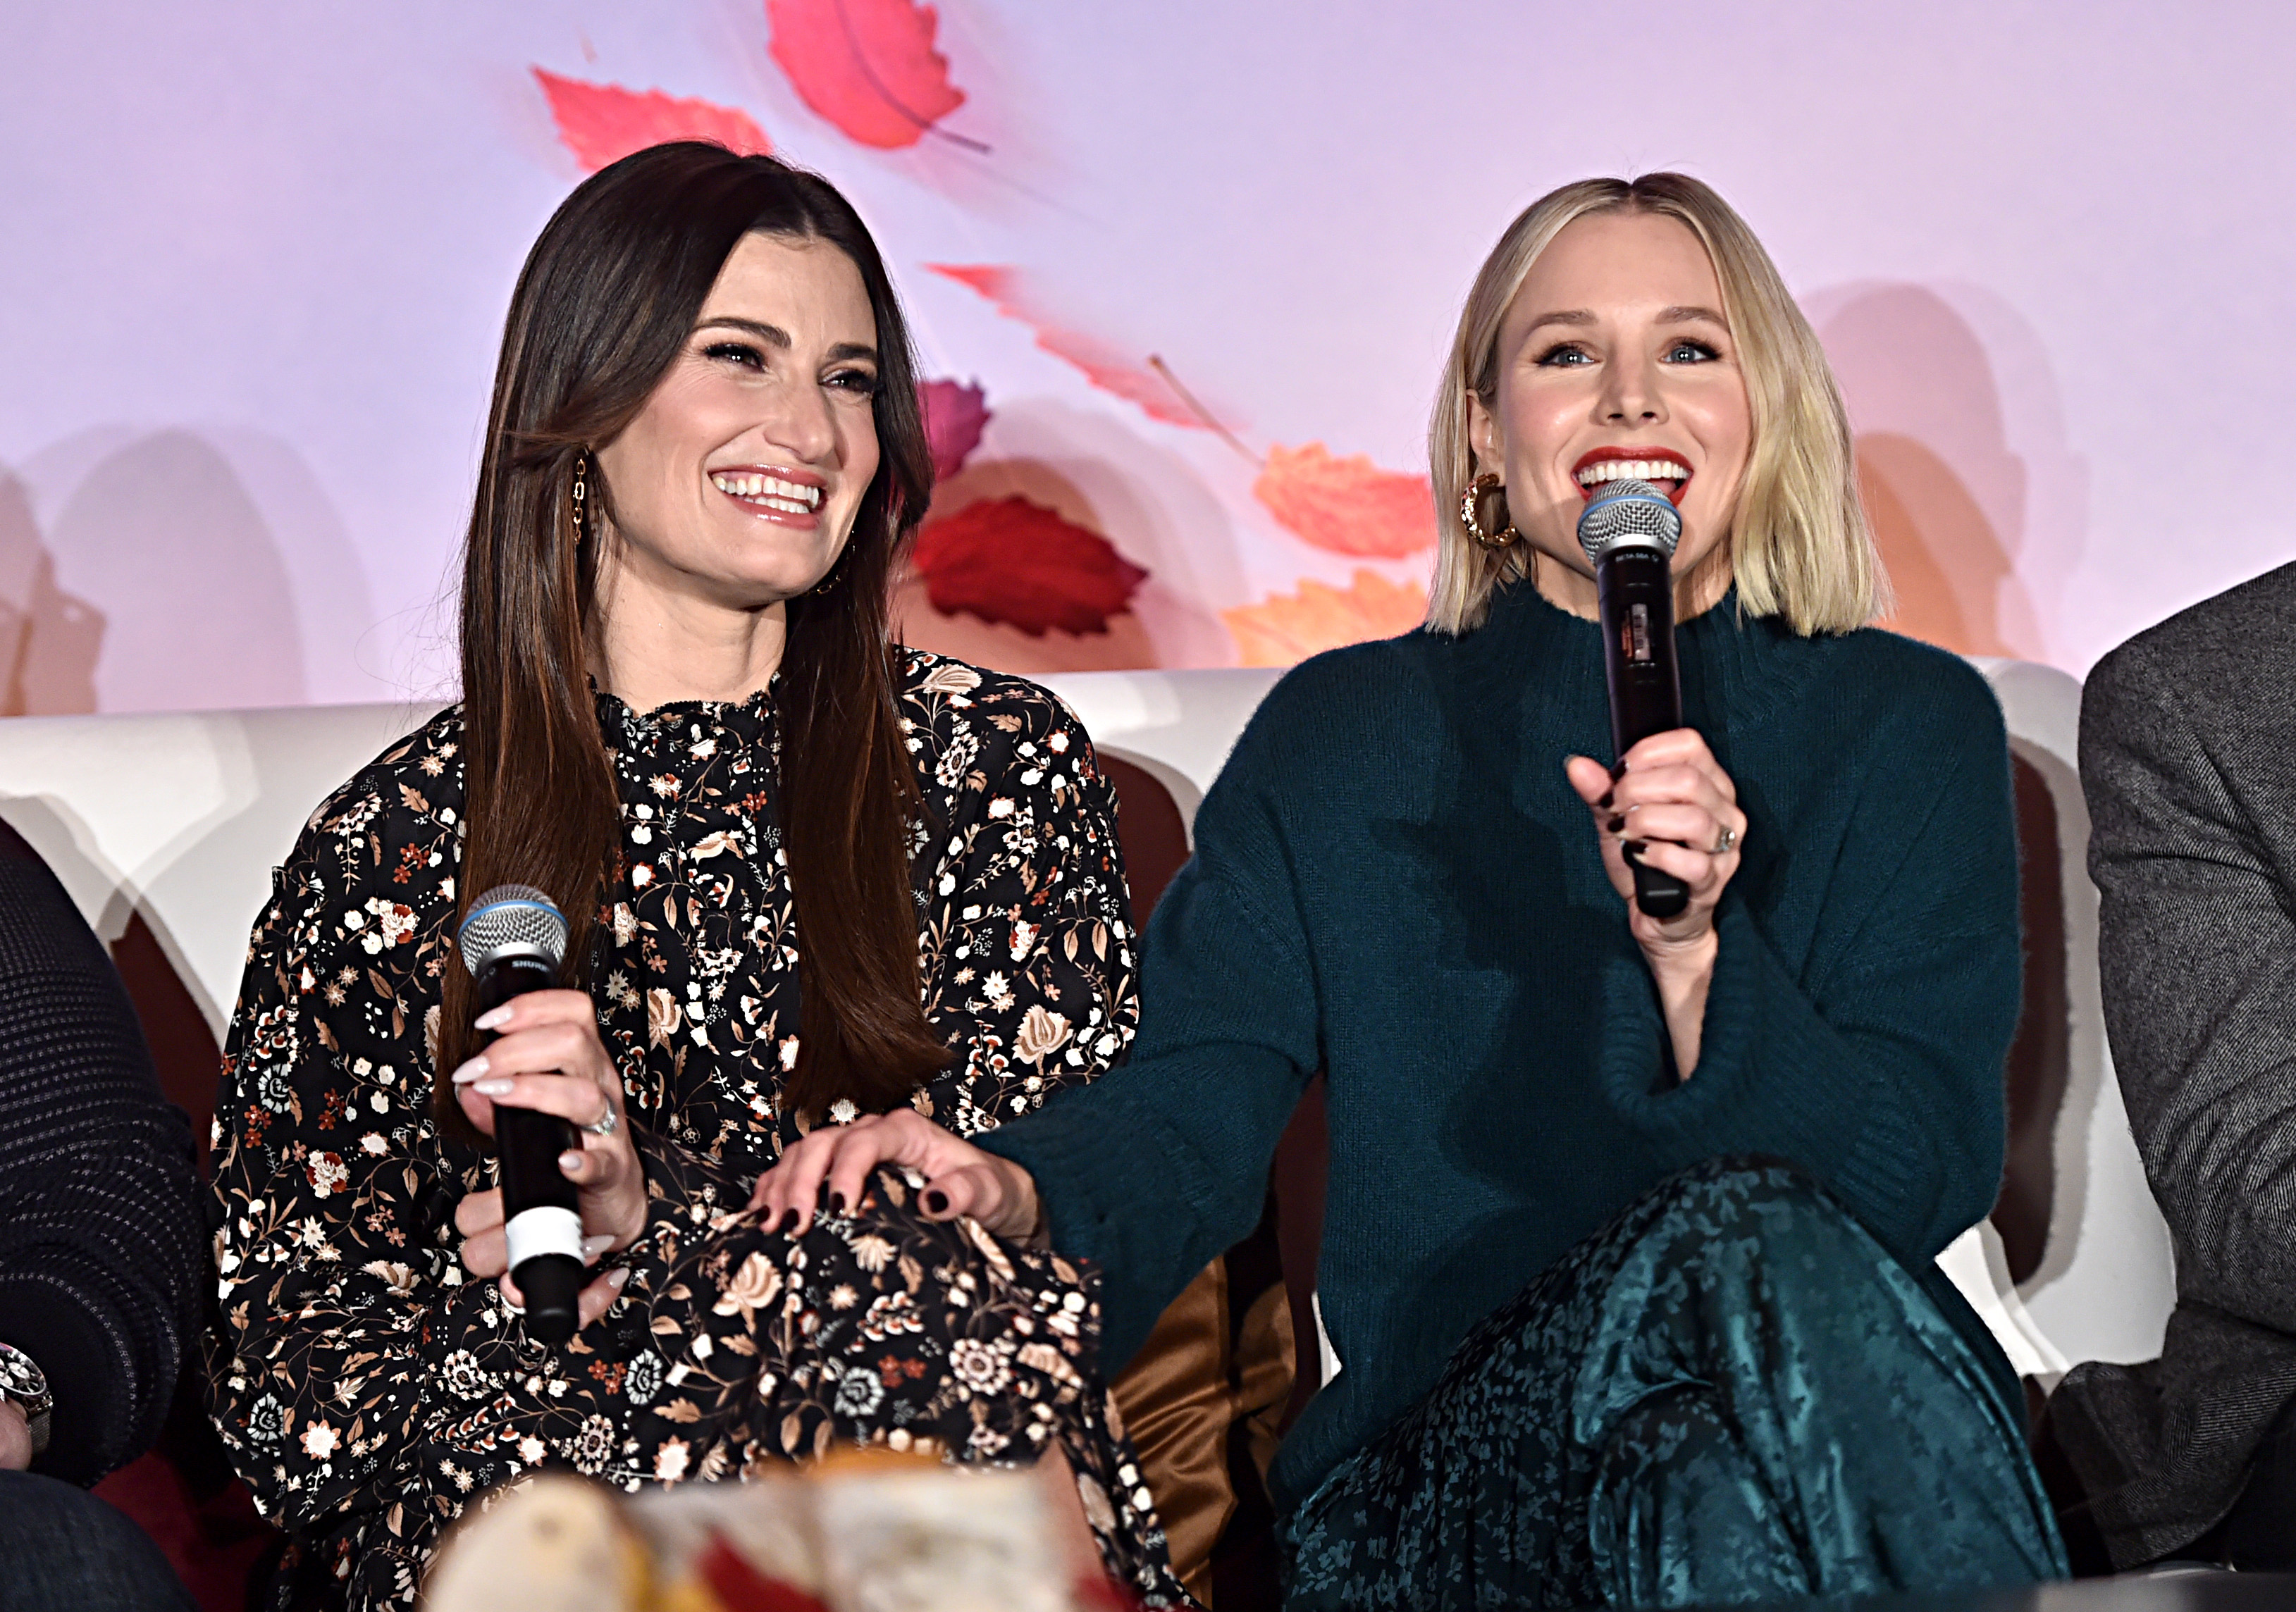 Kristen Bell and Idina Menzell Frozen 2 Press Conference